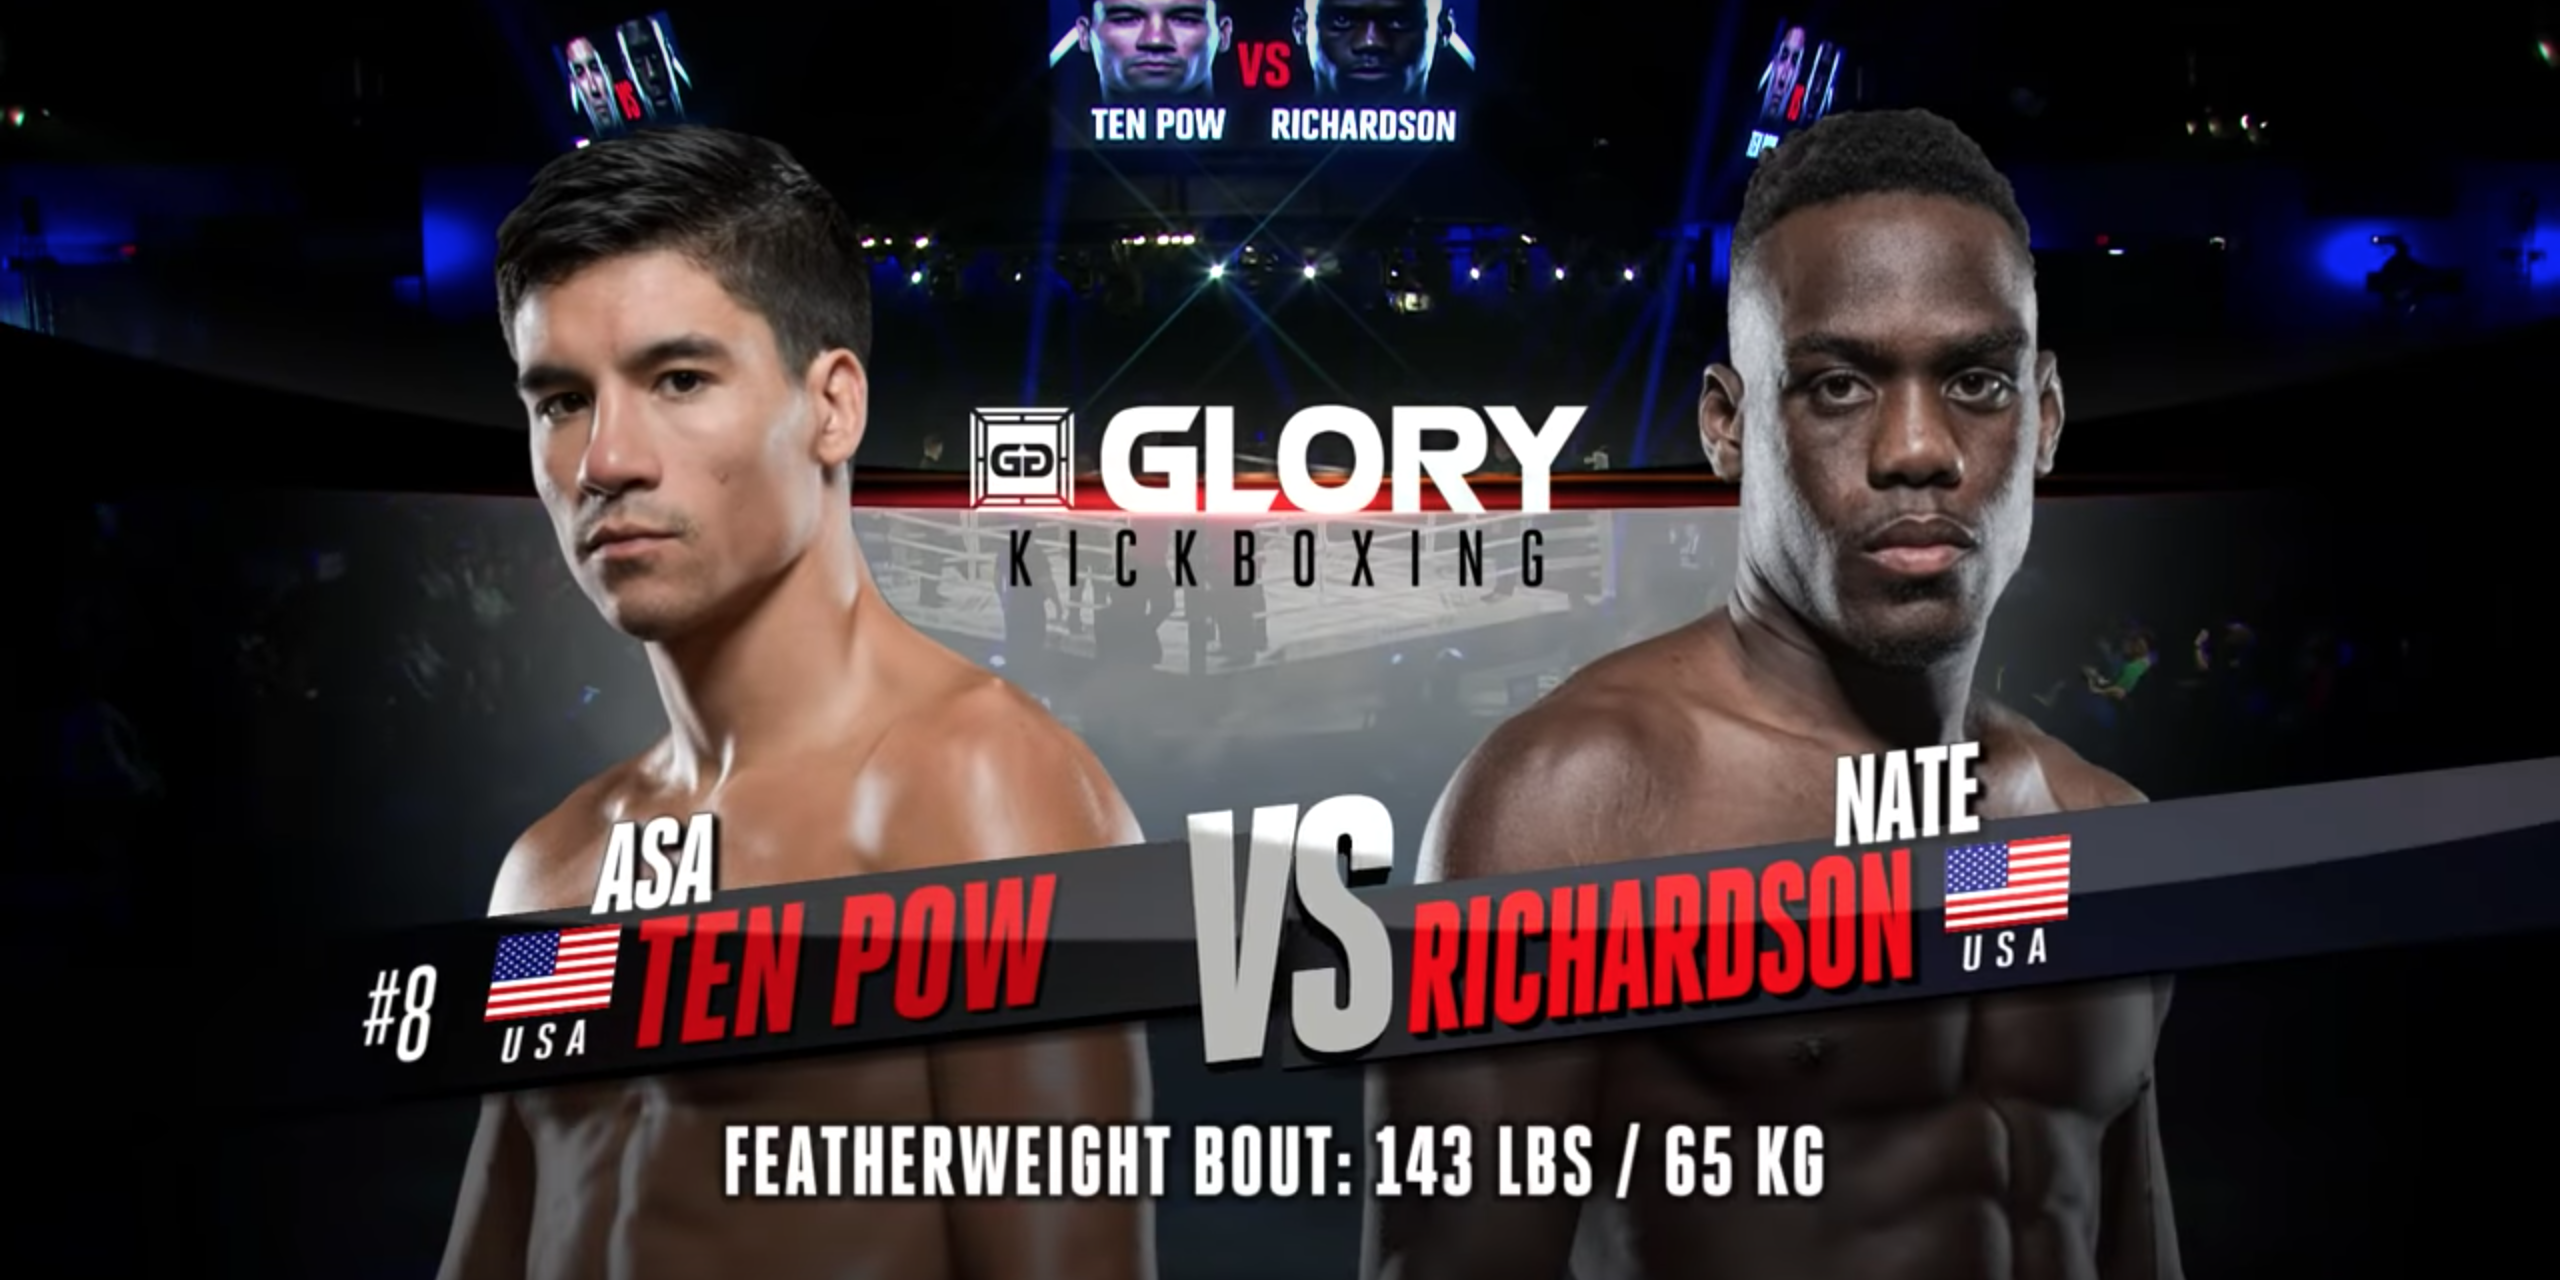 GLORY 63: Asa Ten Pow vs Nate Richardson - Full Fight